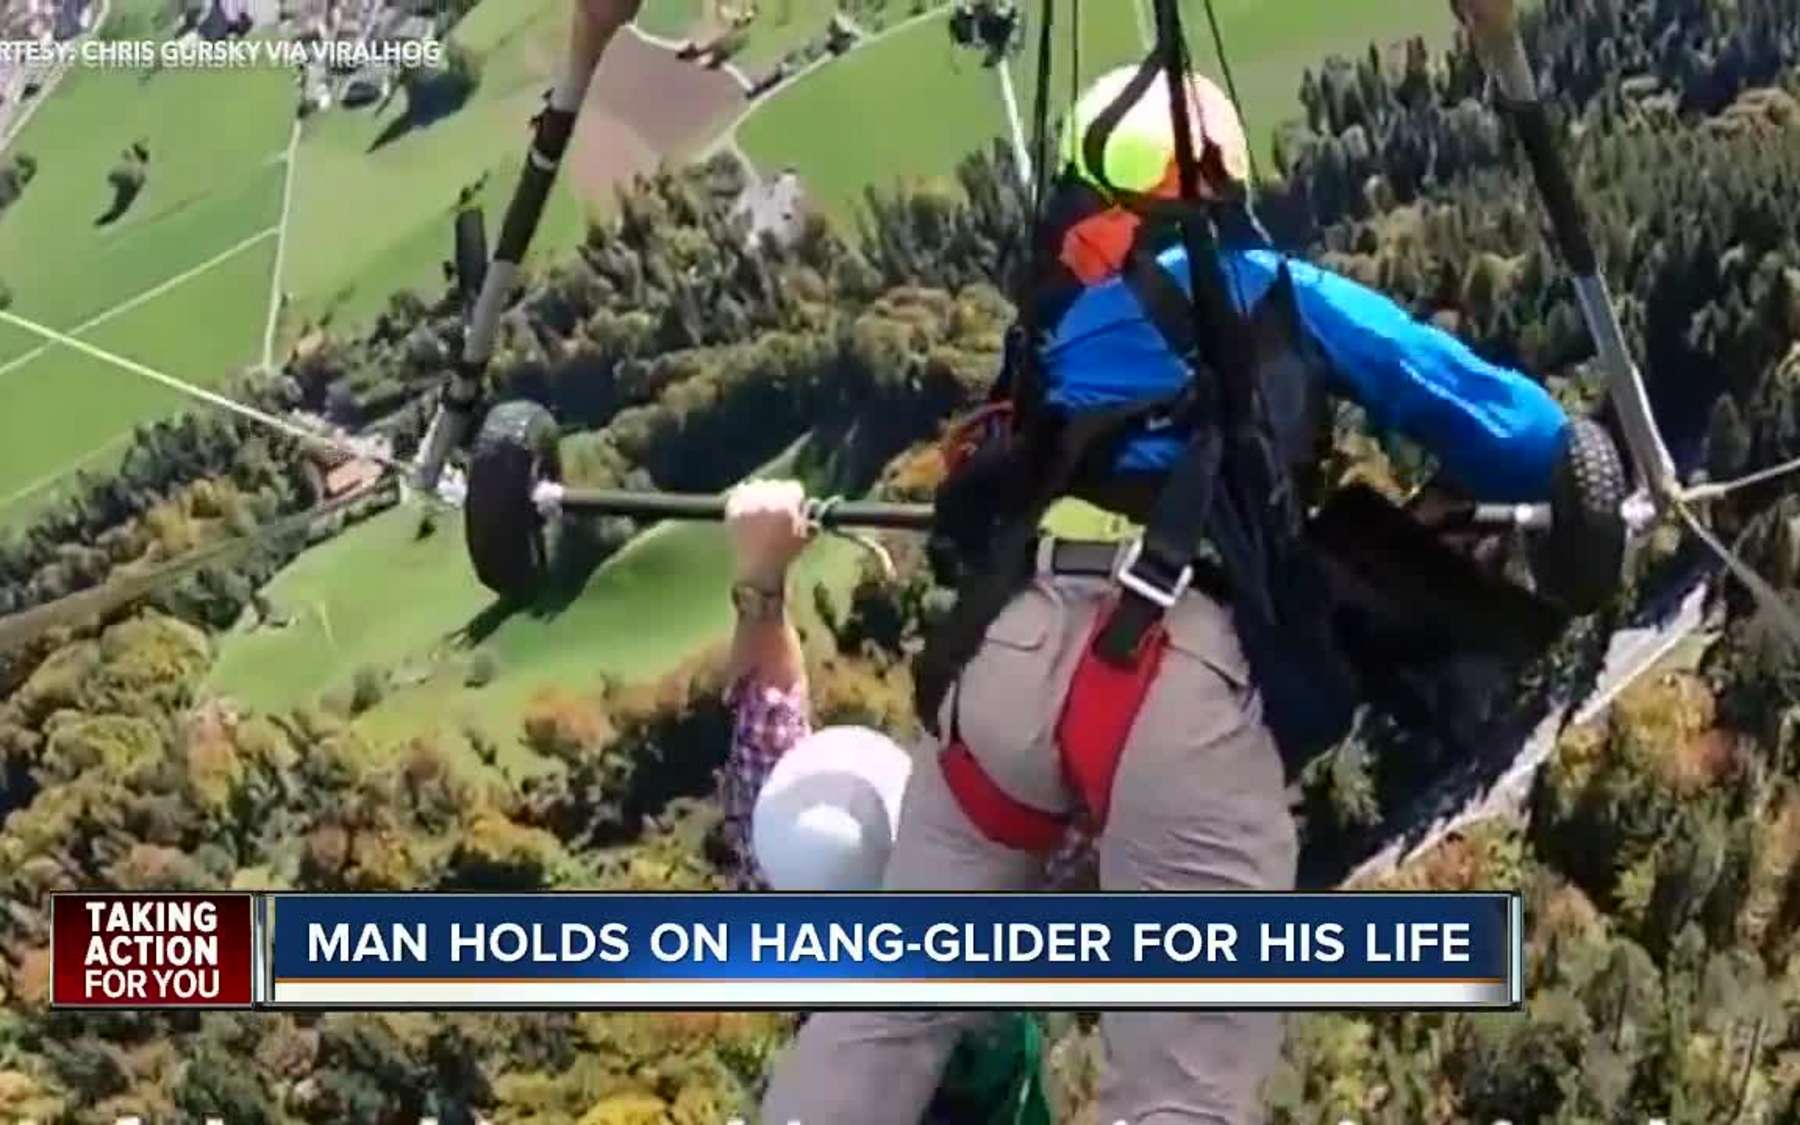 Swiss to investigate near-miss hang gliding incident | Stuff